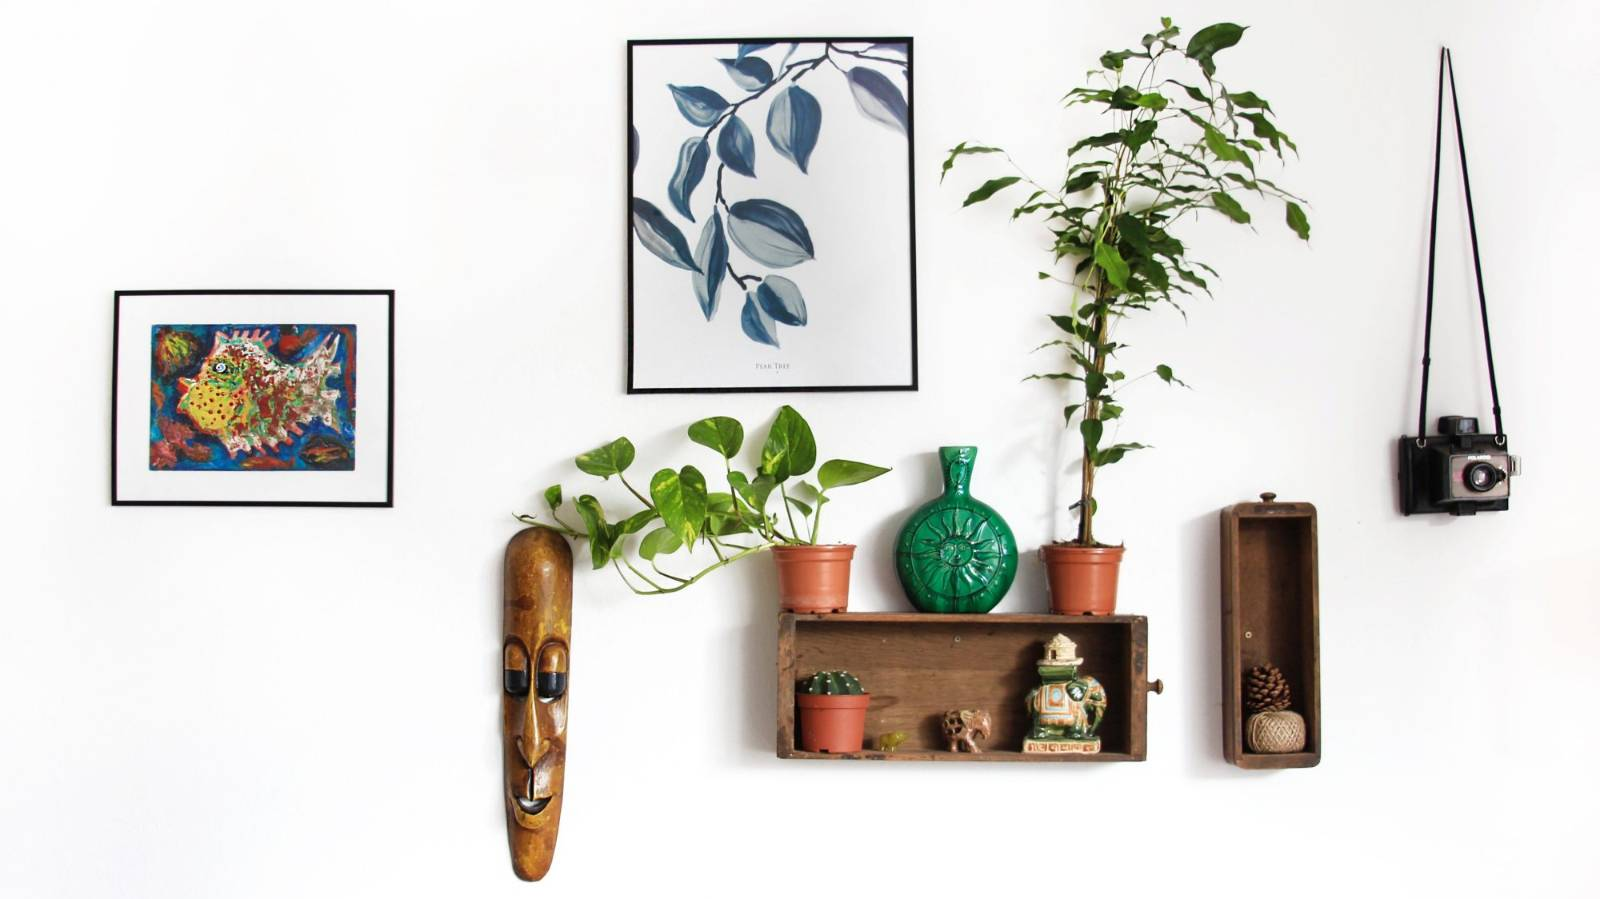 How to use social media to inspire your decor choices